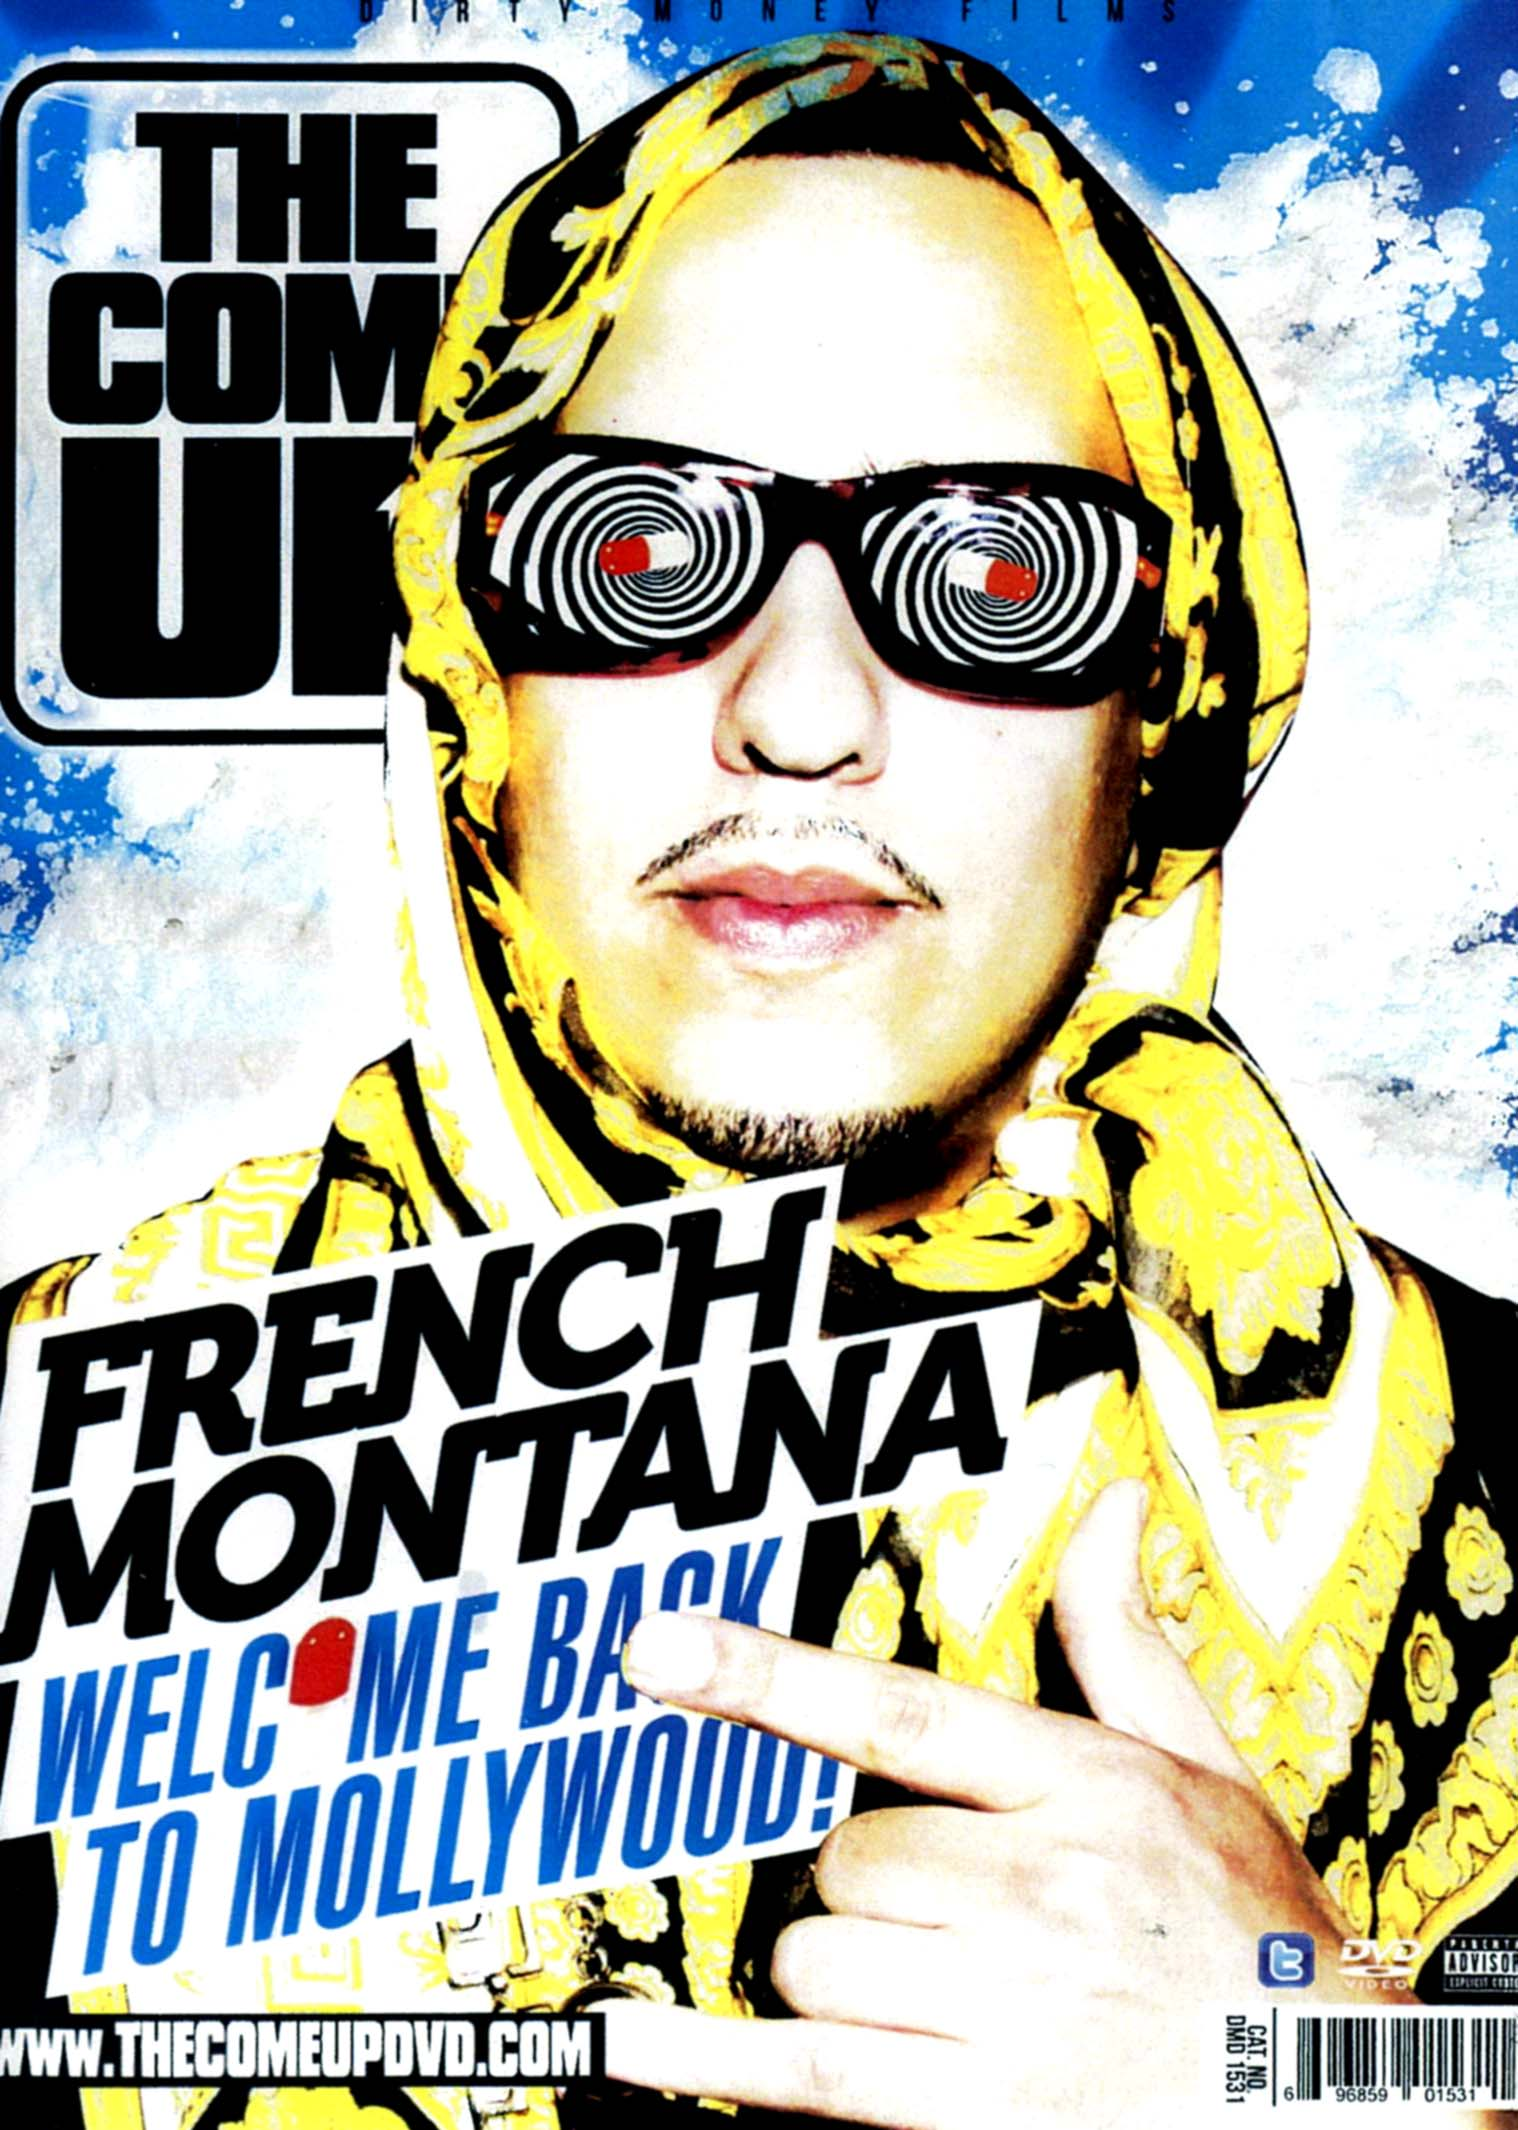 The Come Up: French Montana - Welcome Back to Mollywood!